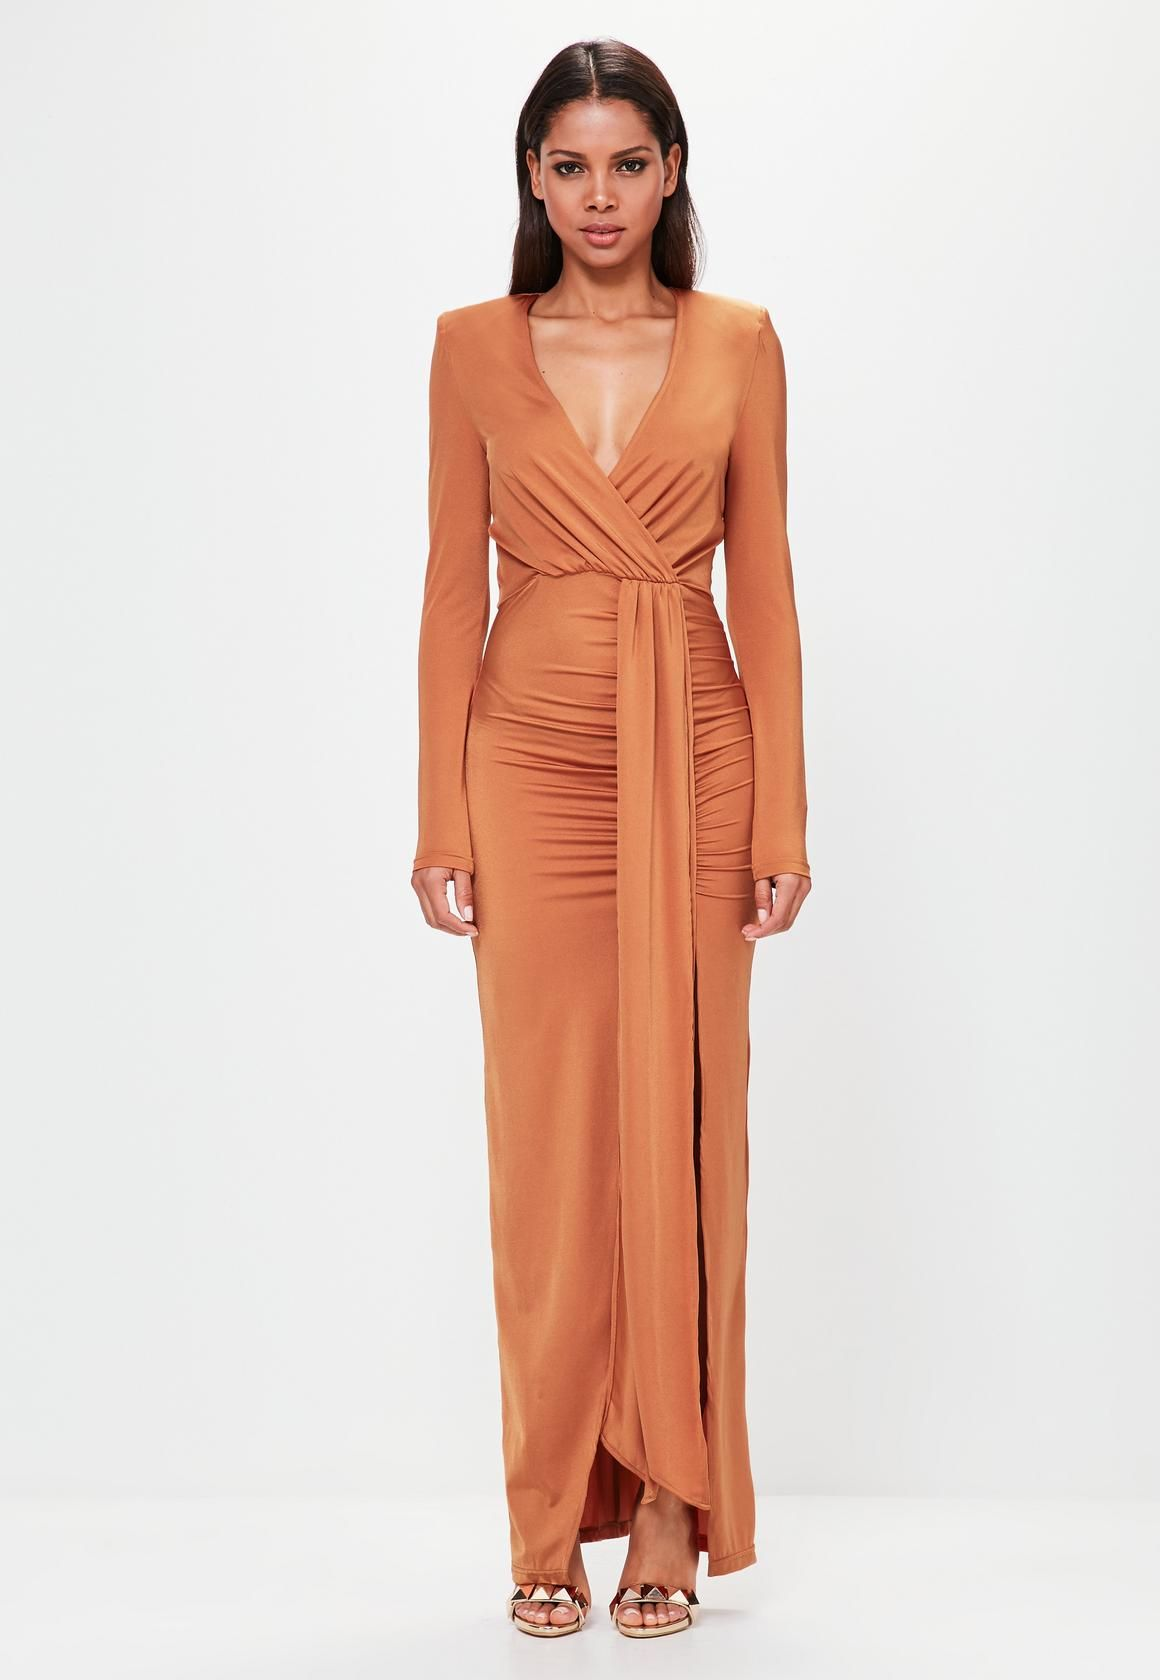 Missguided - Peace Love Orange Long Sleeve Wrap Maxi Dress eeb2316d9